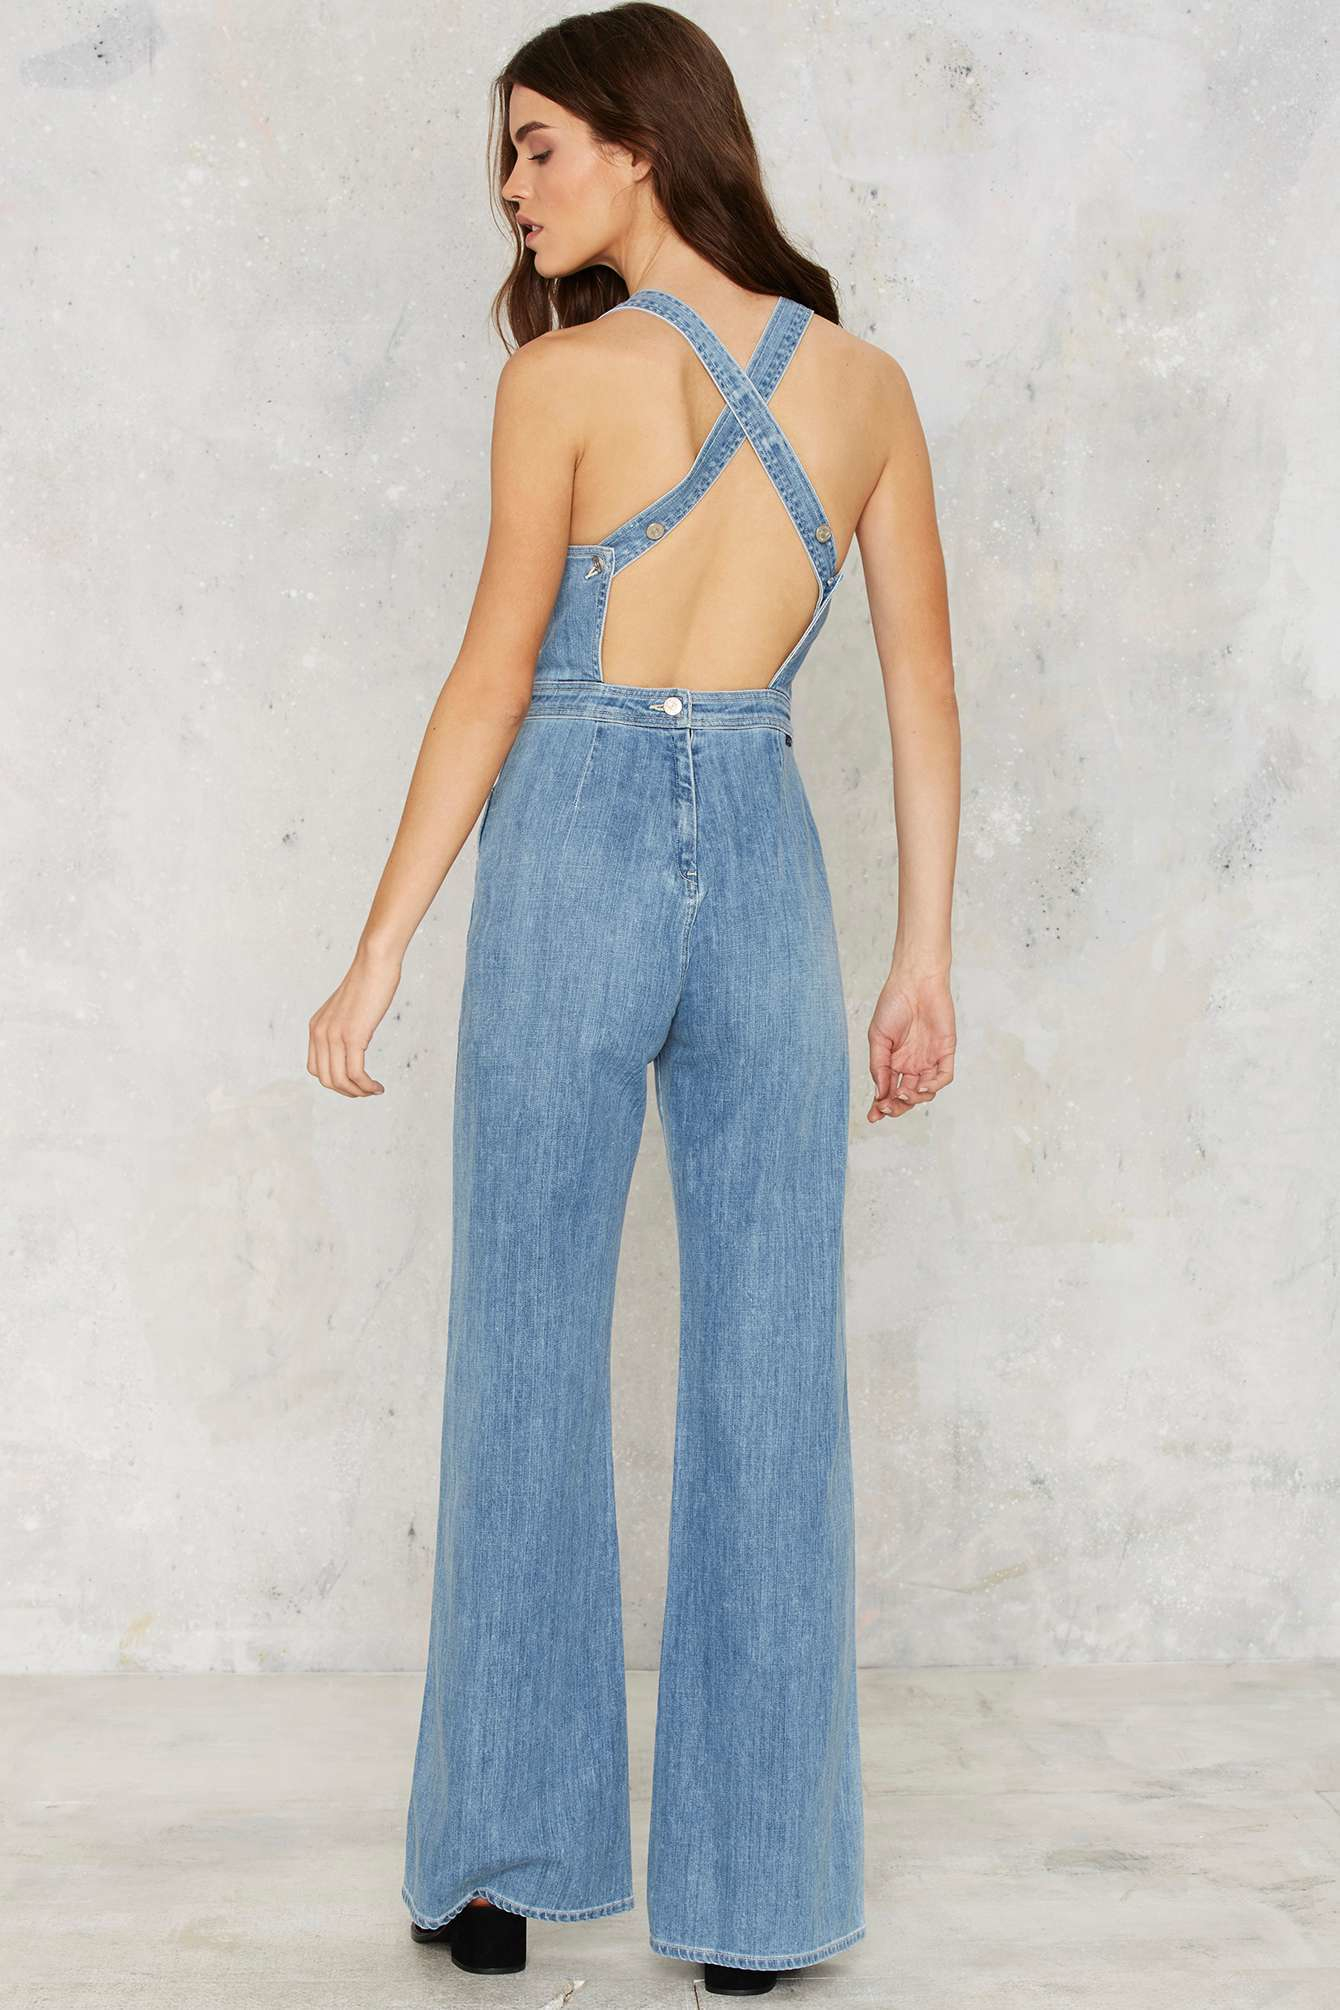 57078aff427 Lyst - Citizens of Humanity Katie Denim Overalls in Blue